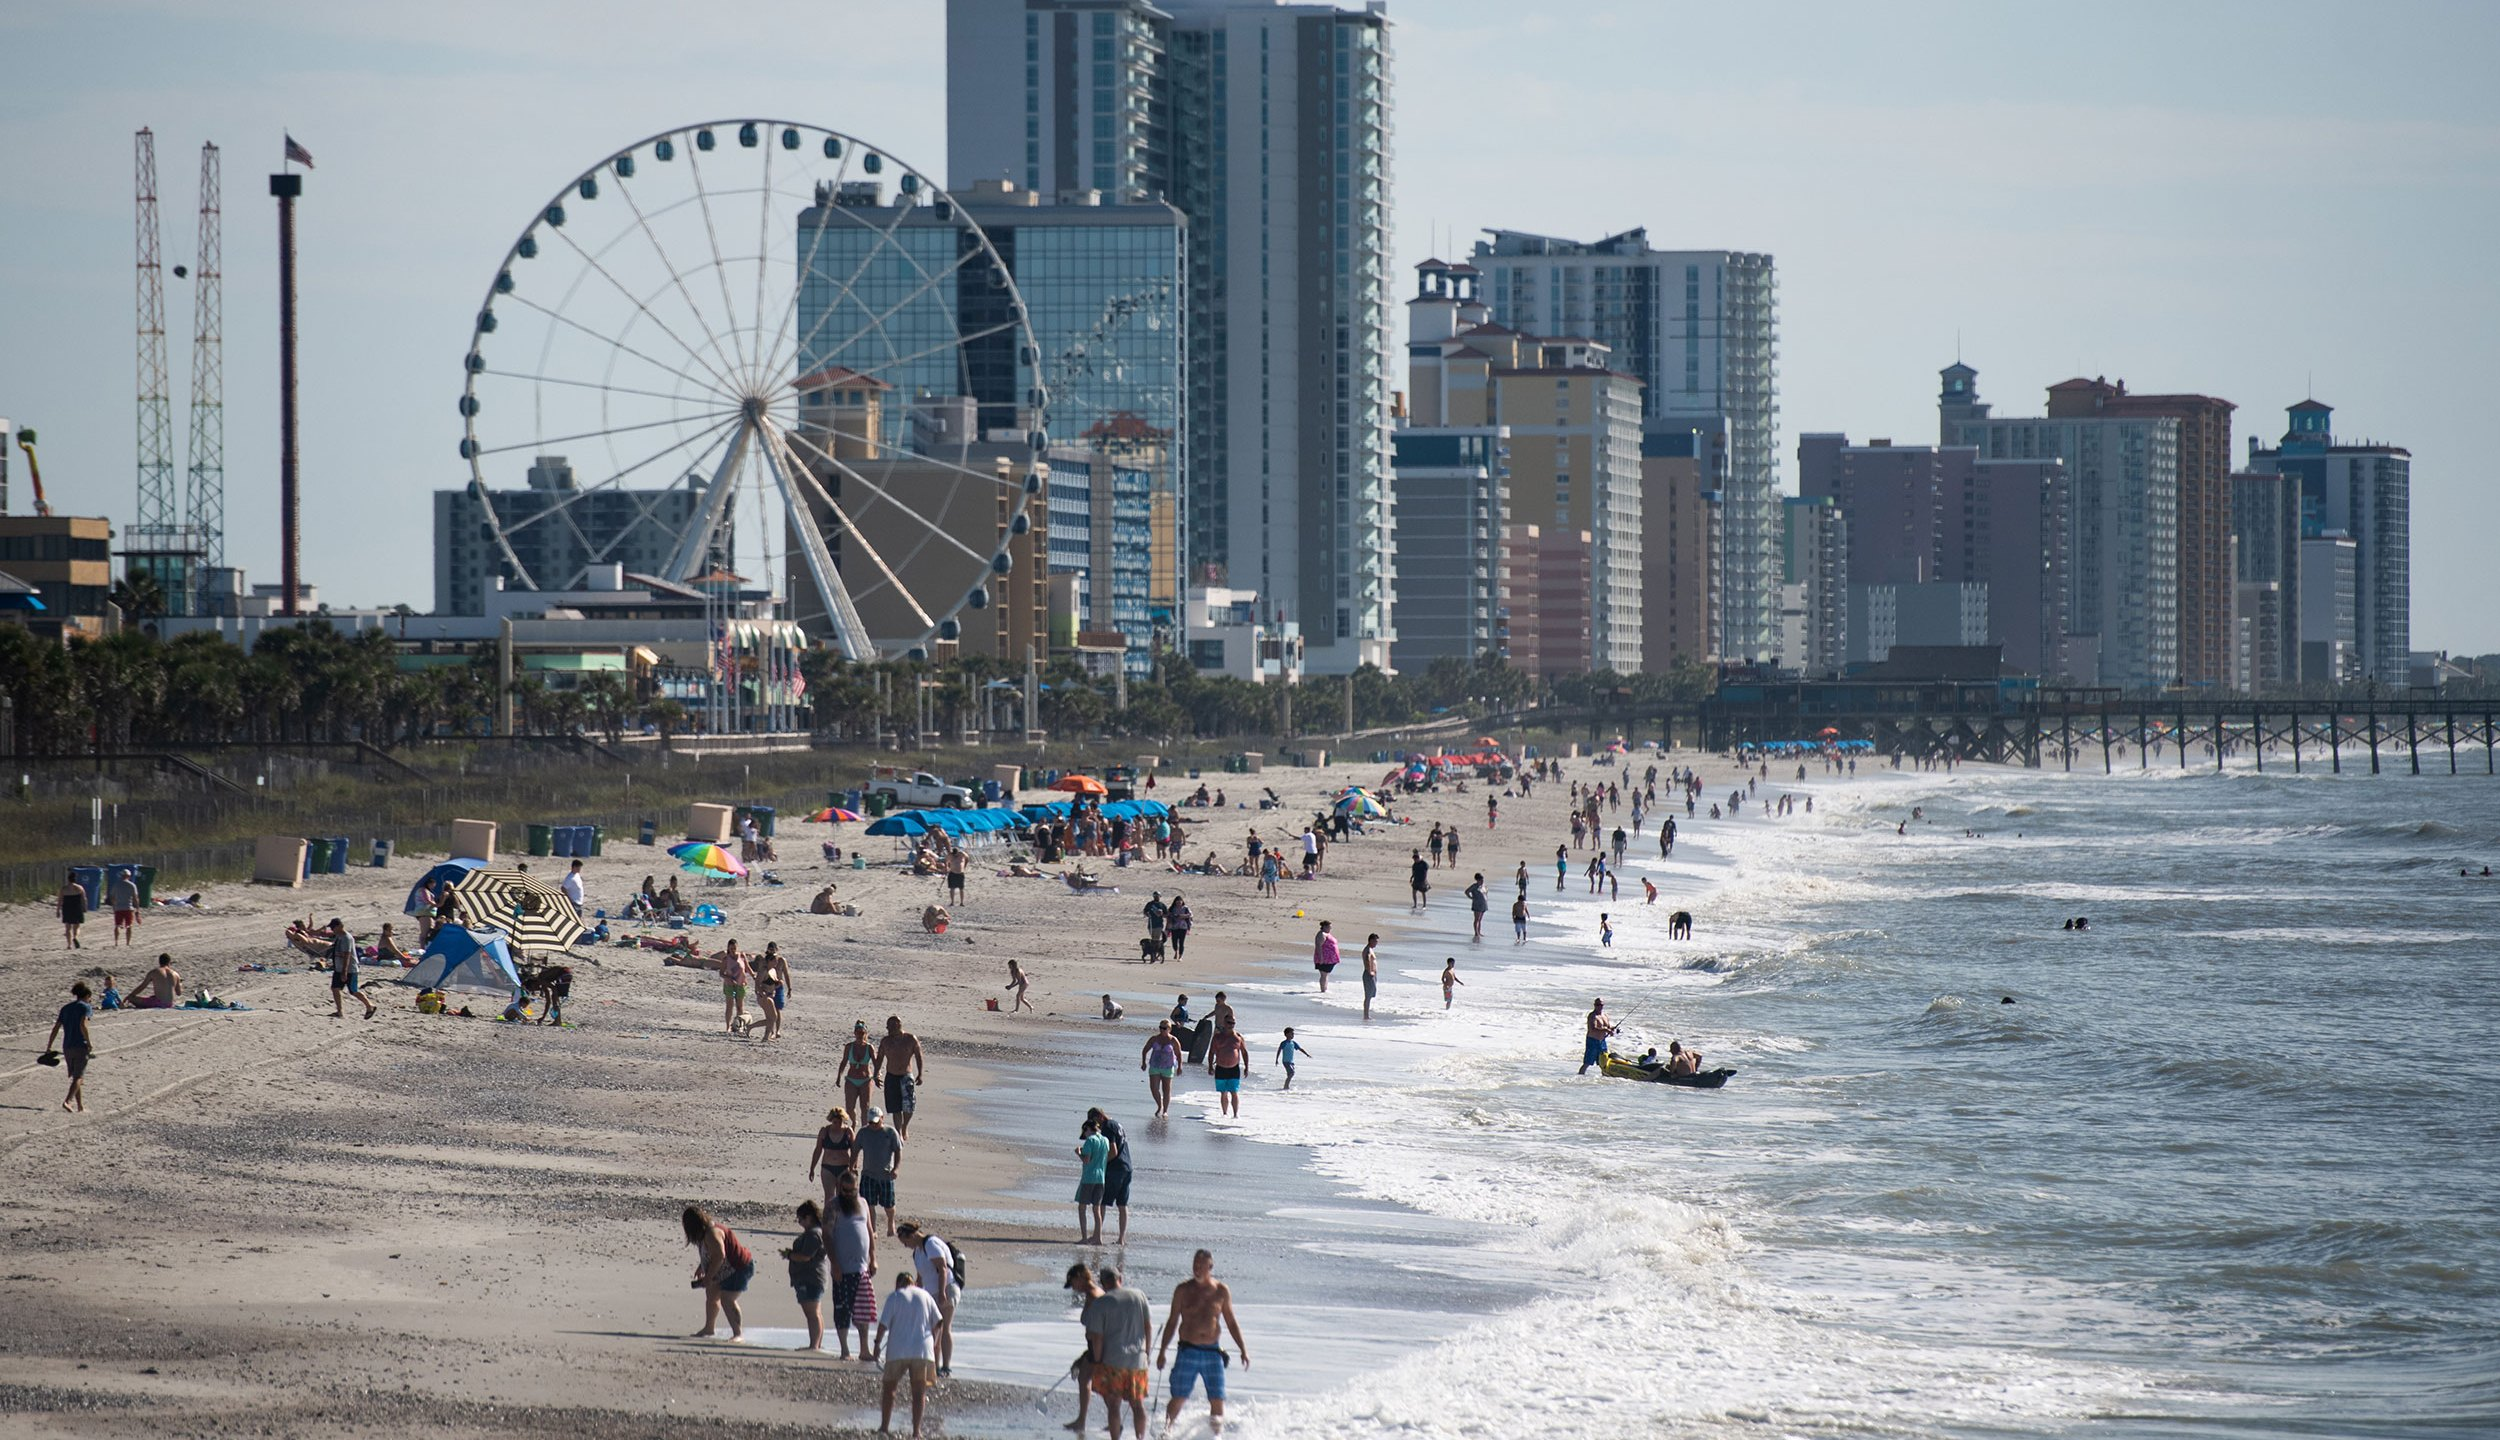 People walk and gather along the beach on the morning of May 23, 2020, in Myrtle Beach, South Carolina. (Photo by Sean Rayford/Getty Images)